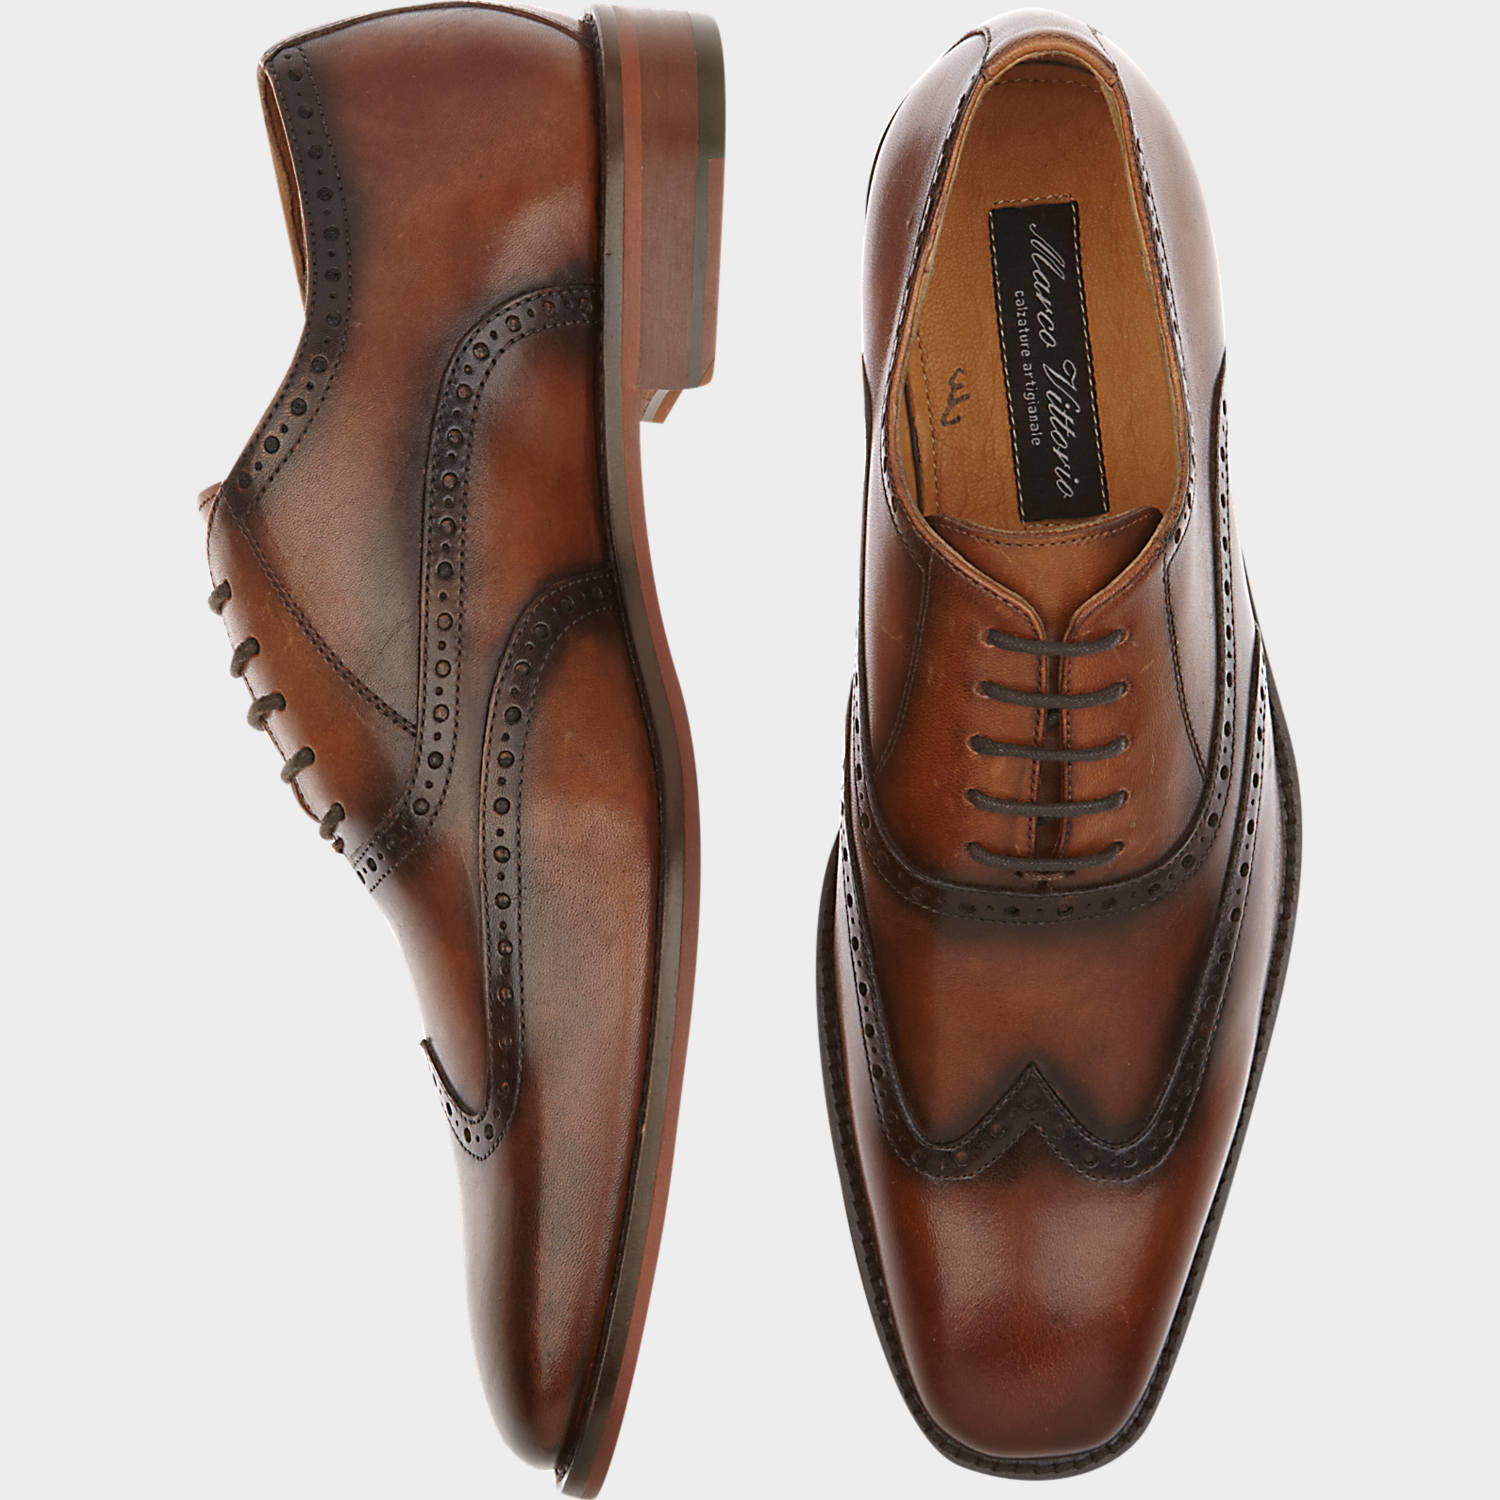 marco vittorio monza brown wingtip lace from s wearhouse